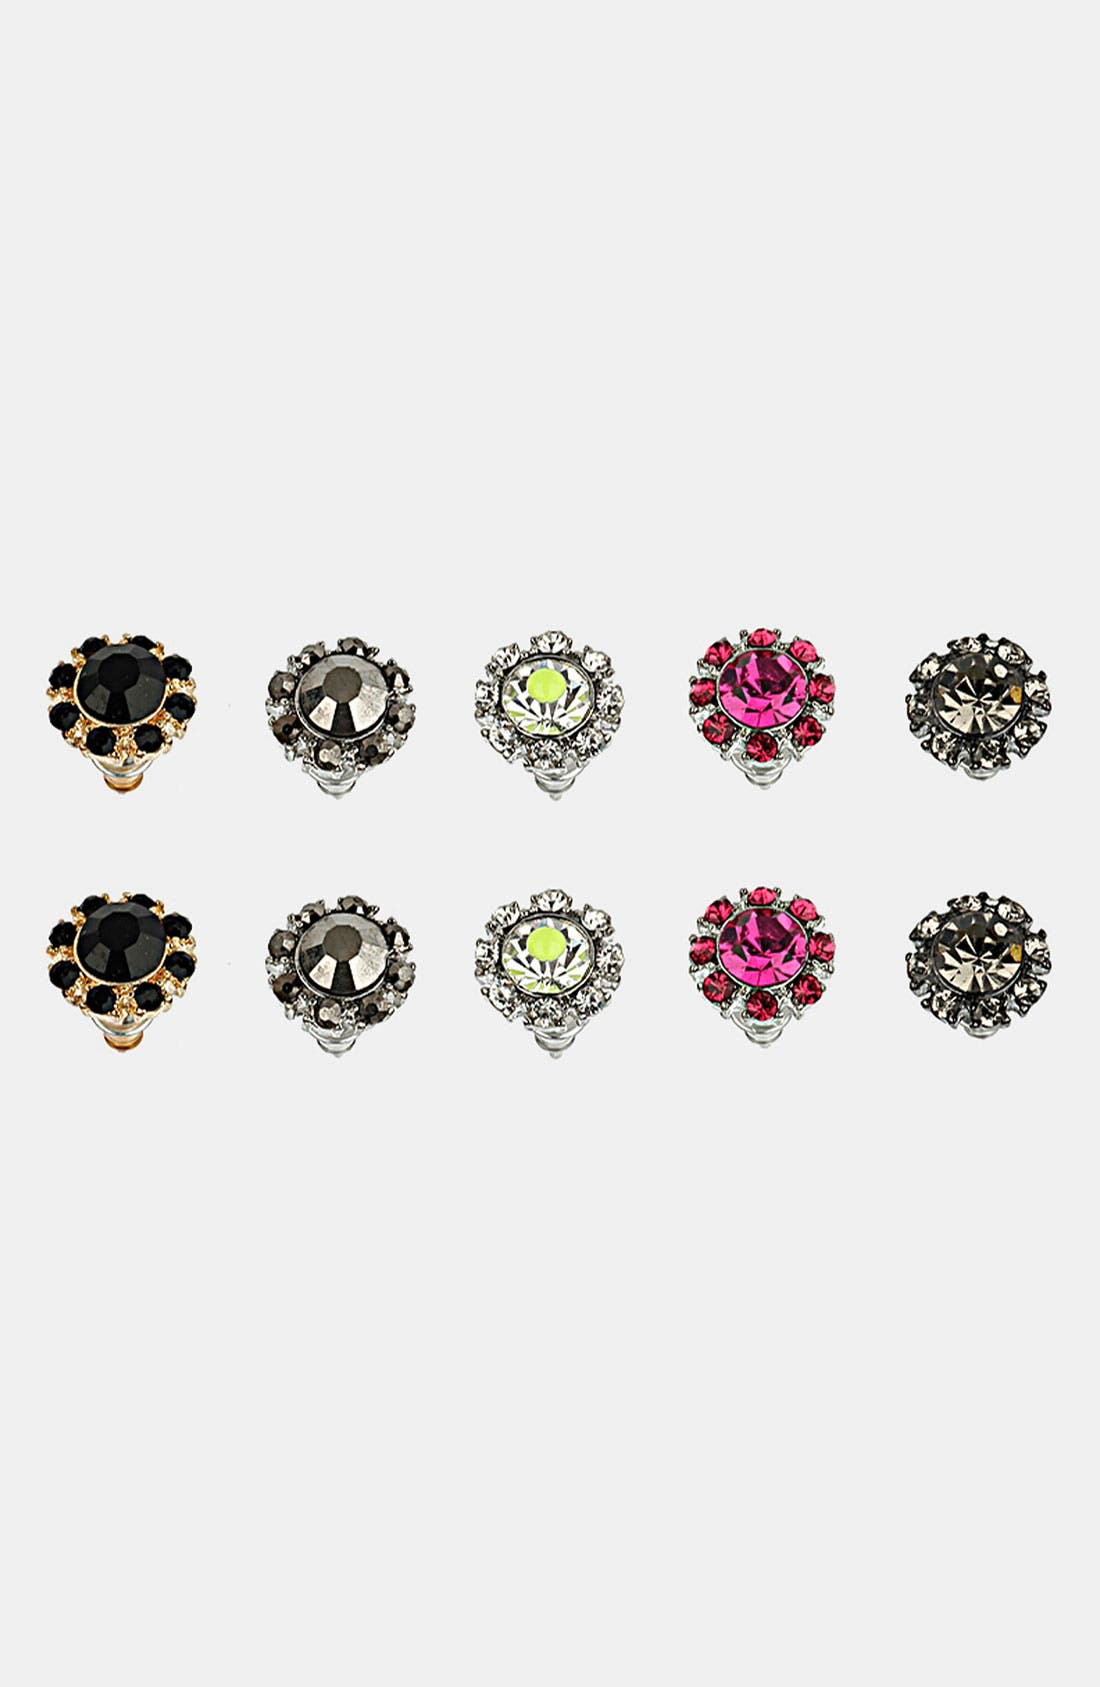 Alternate Image 1 Selected - Topshop 'Stone Surround' Assorted Stud Earrings (Set of 5)